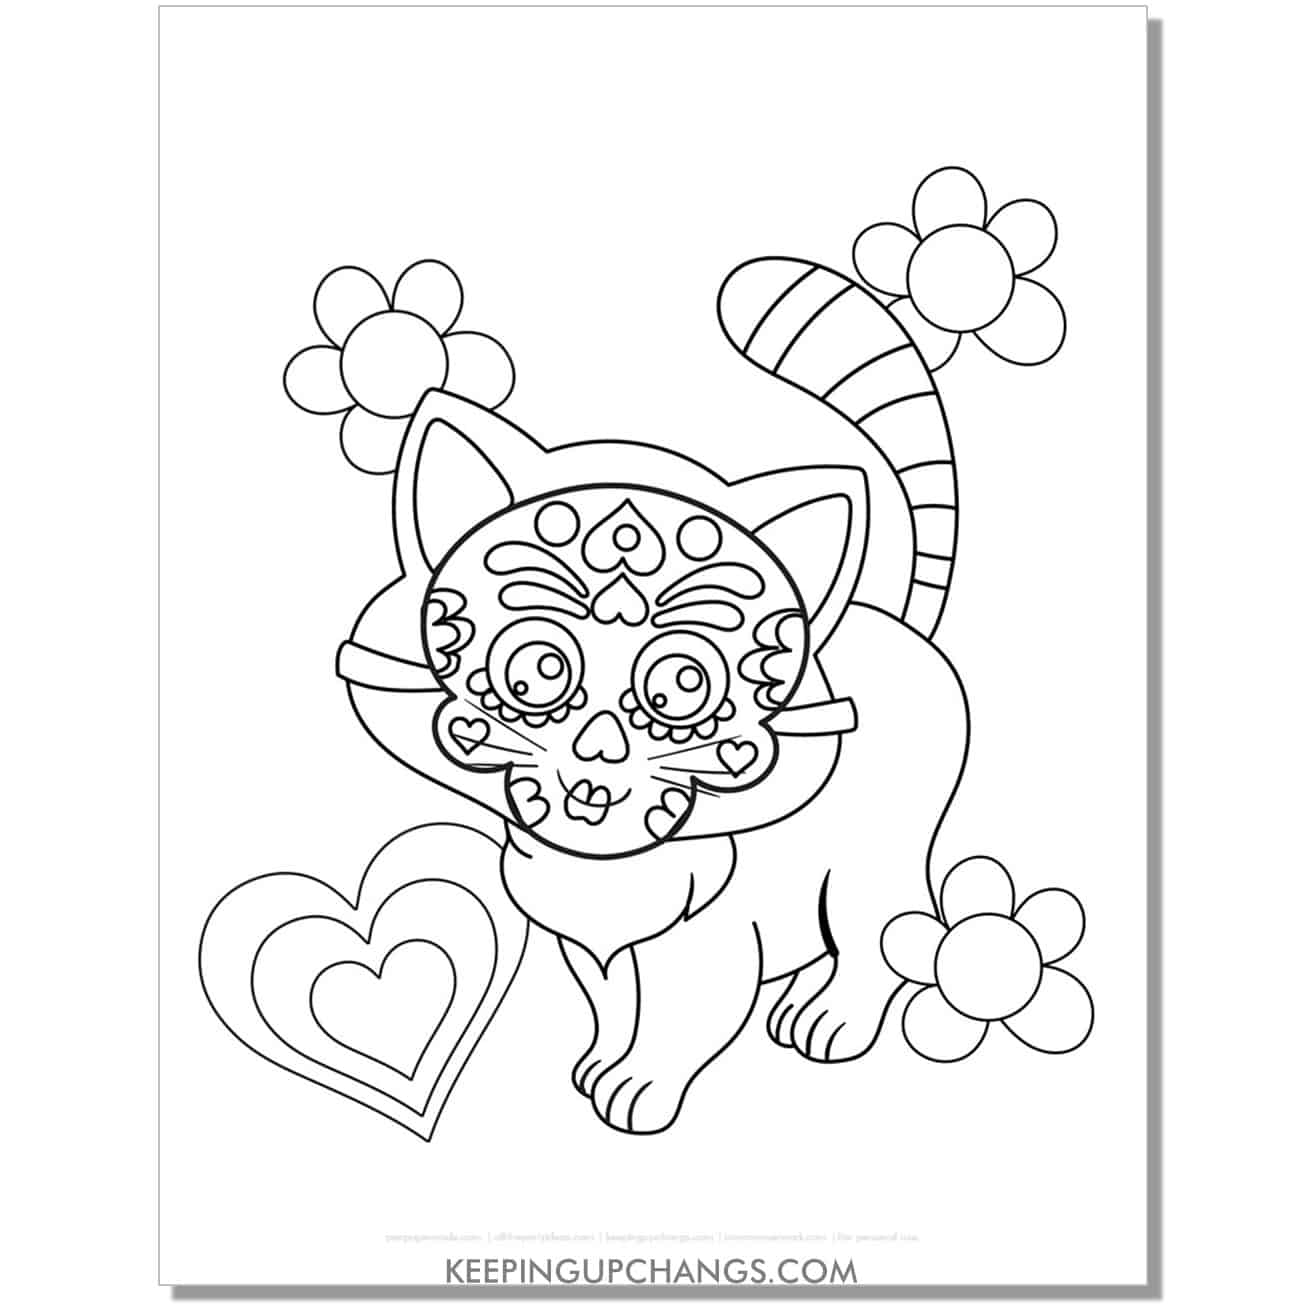 standing halloween cat with day of the dead mask coloring page.